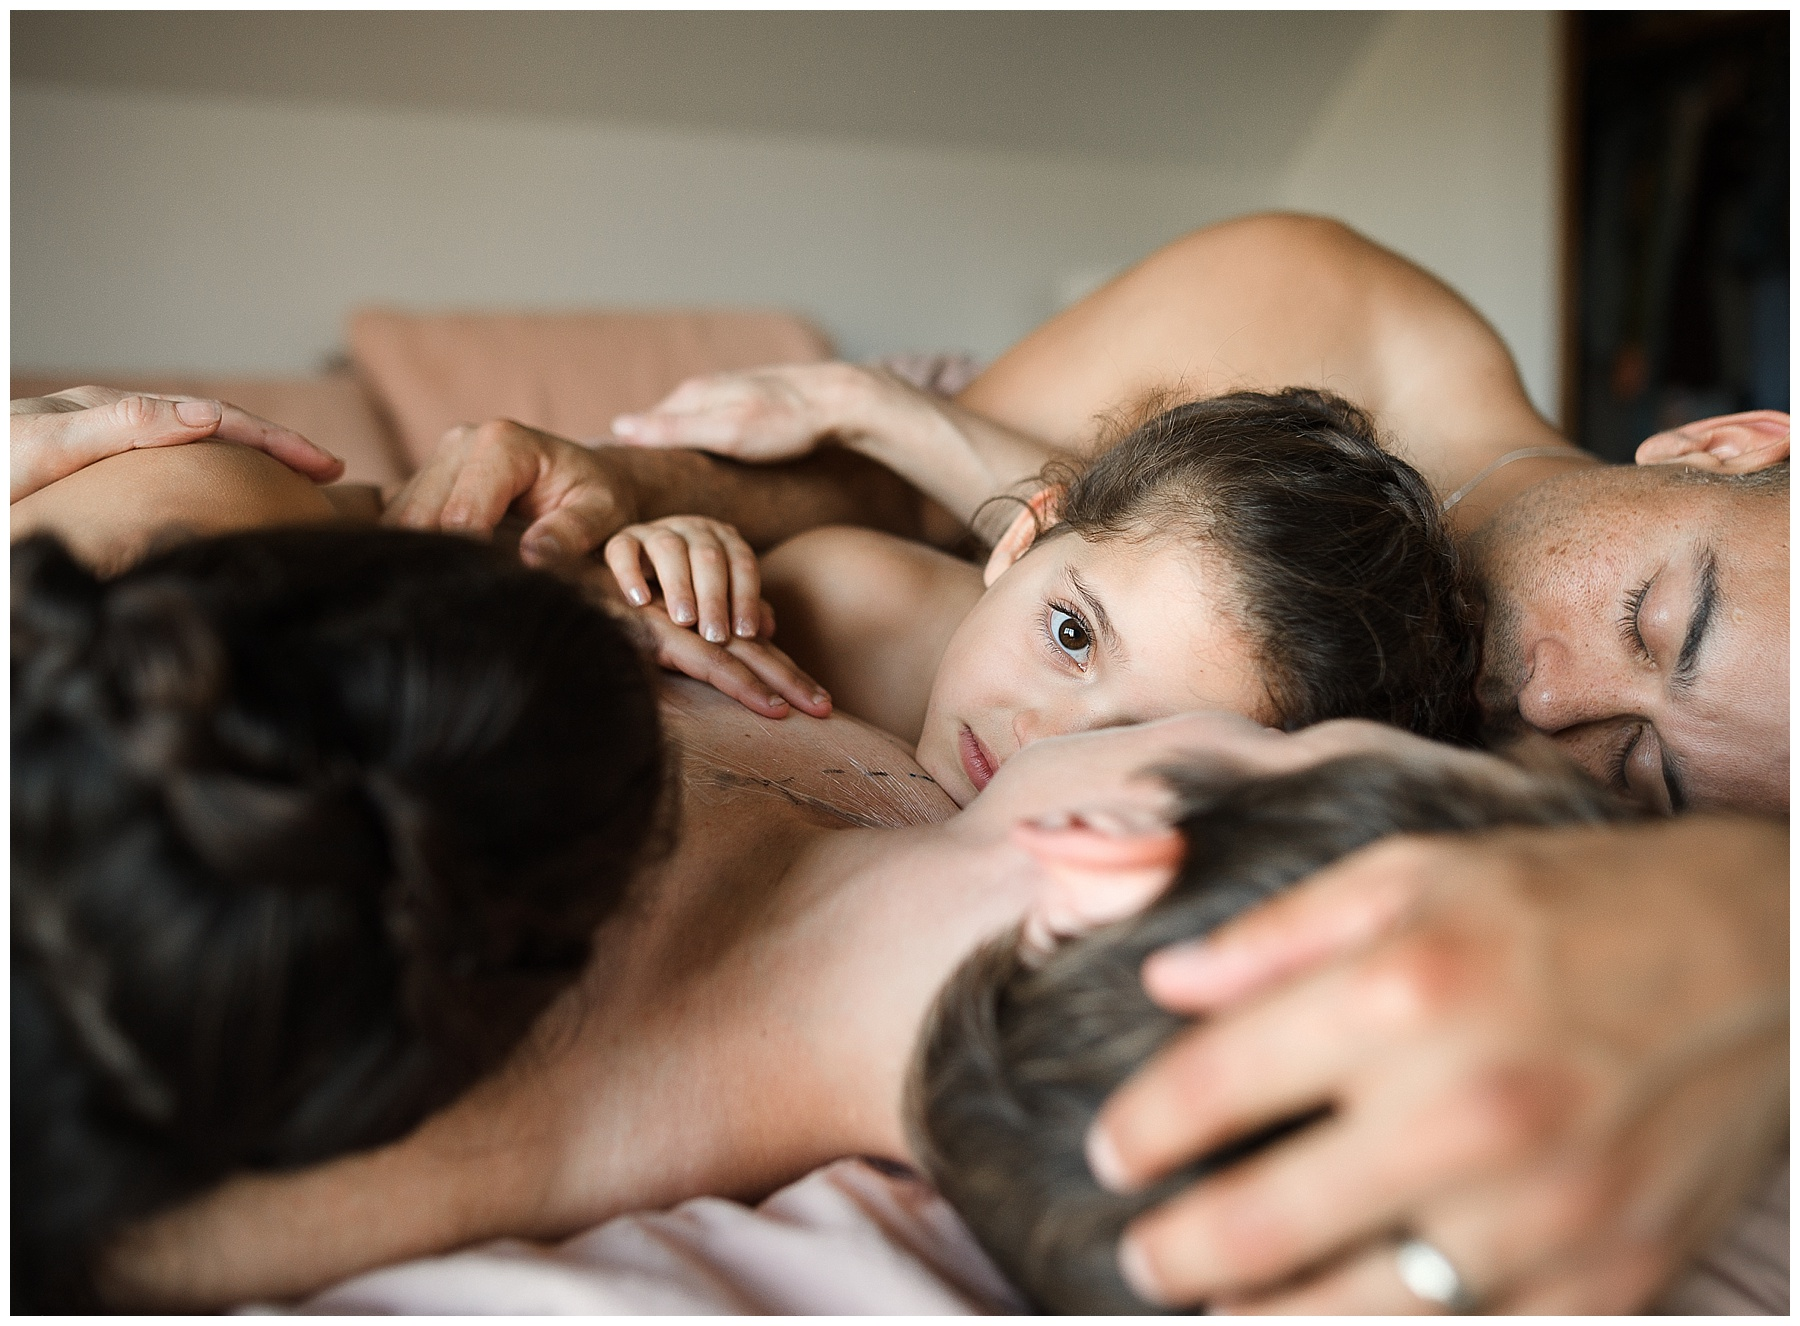 mastectomy - breast cancer treatment - family support - photography